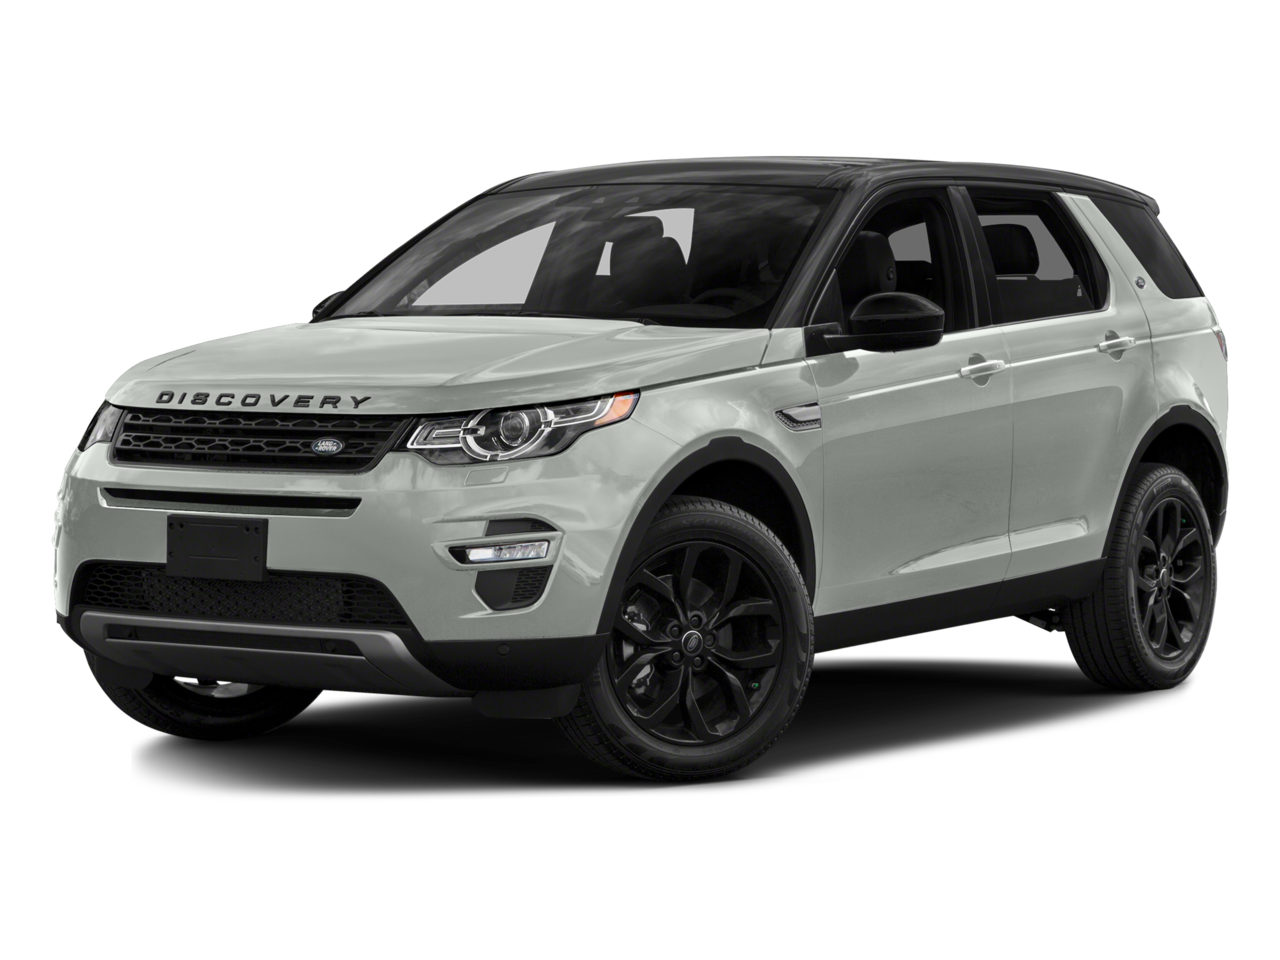 2016 Land Rover Discovery Sport Trend Car Gallery